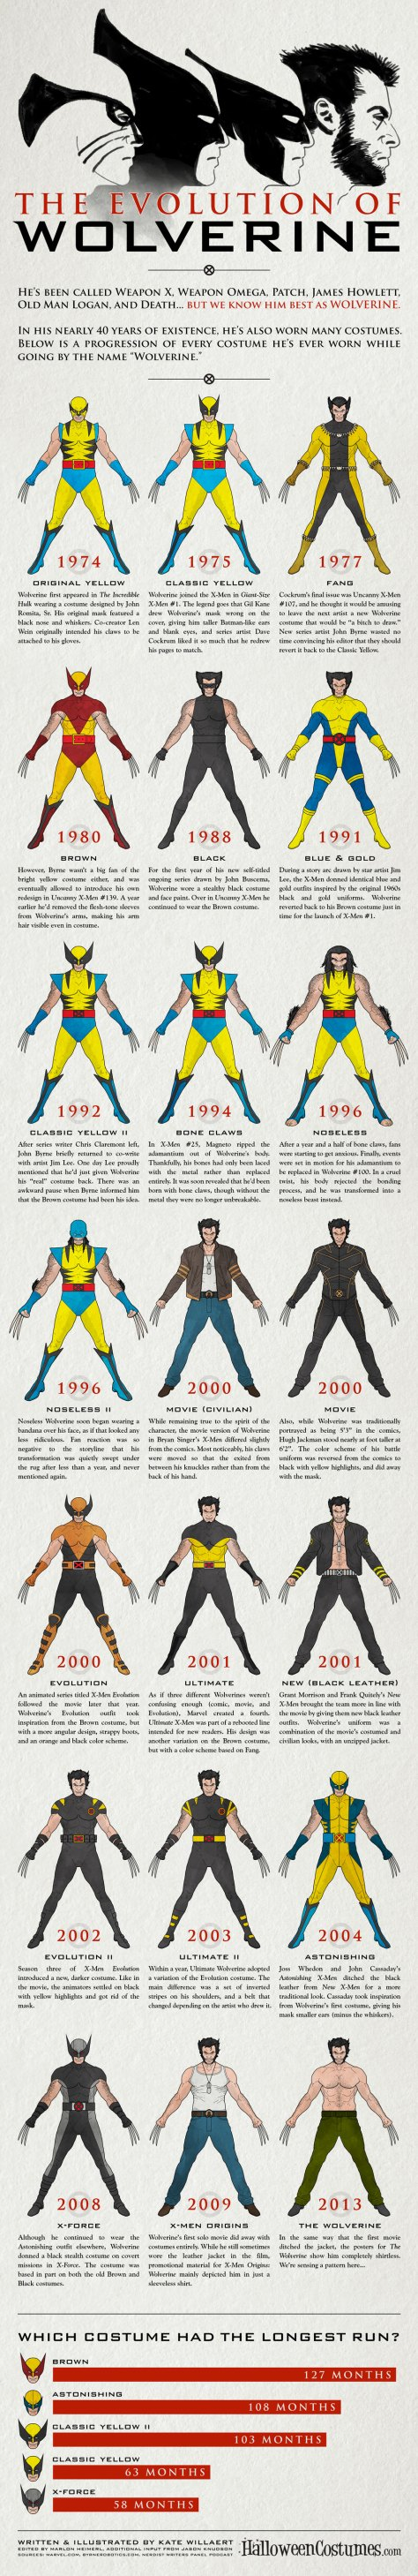 HalloweenCostumes.com: The Costume Evolution of Wolverine